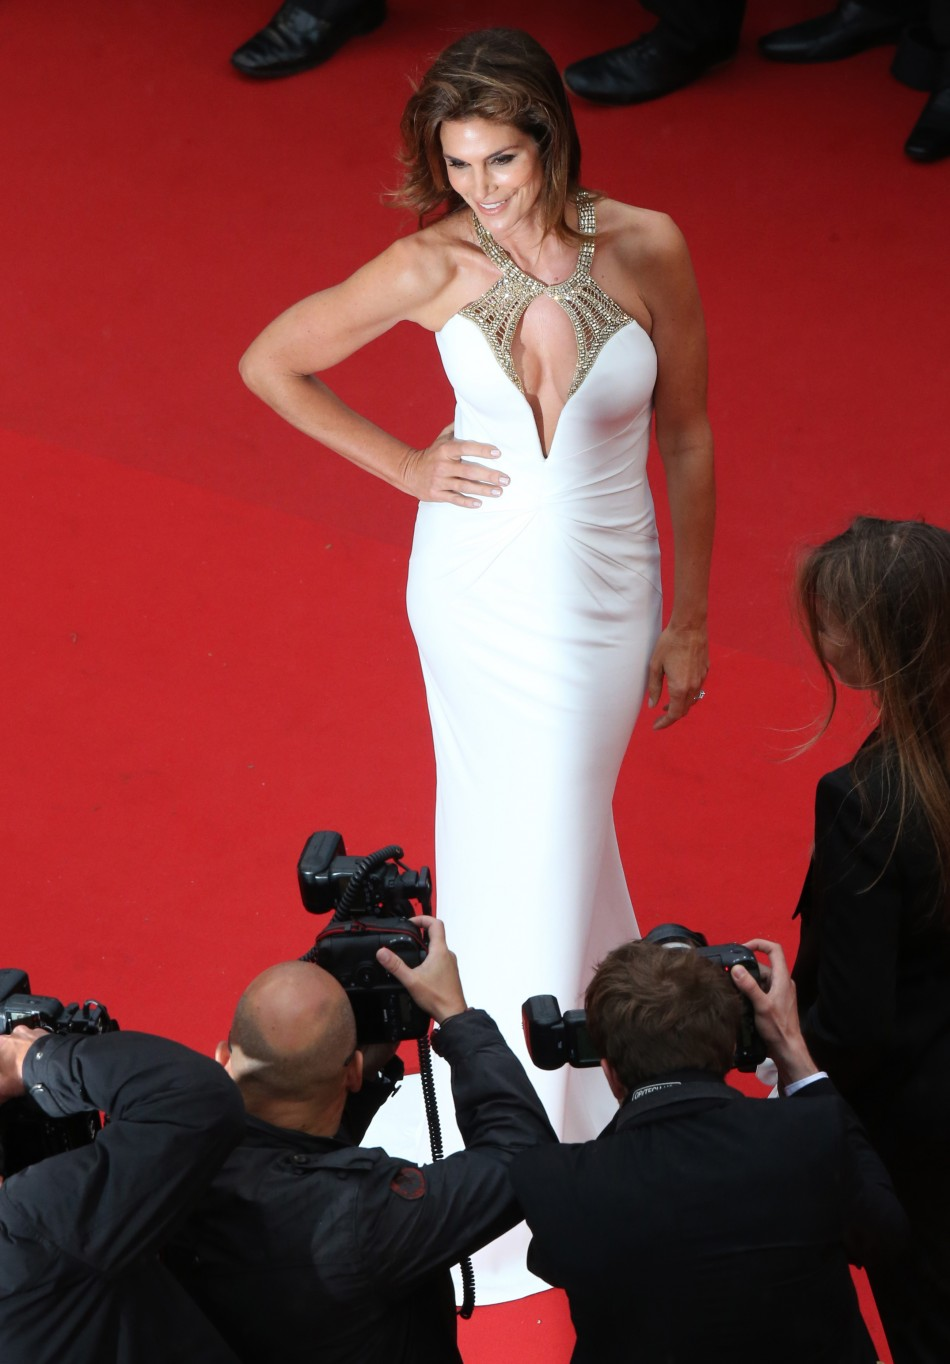 Model Cindy Crawford poses on the red carpet as she arrives for the screening of the film The Great Gatsby and for the opening ceremony of the 66th Cannes Film Festival in Cannes May 15, 2013.